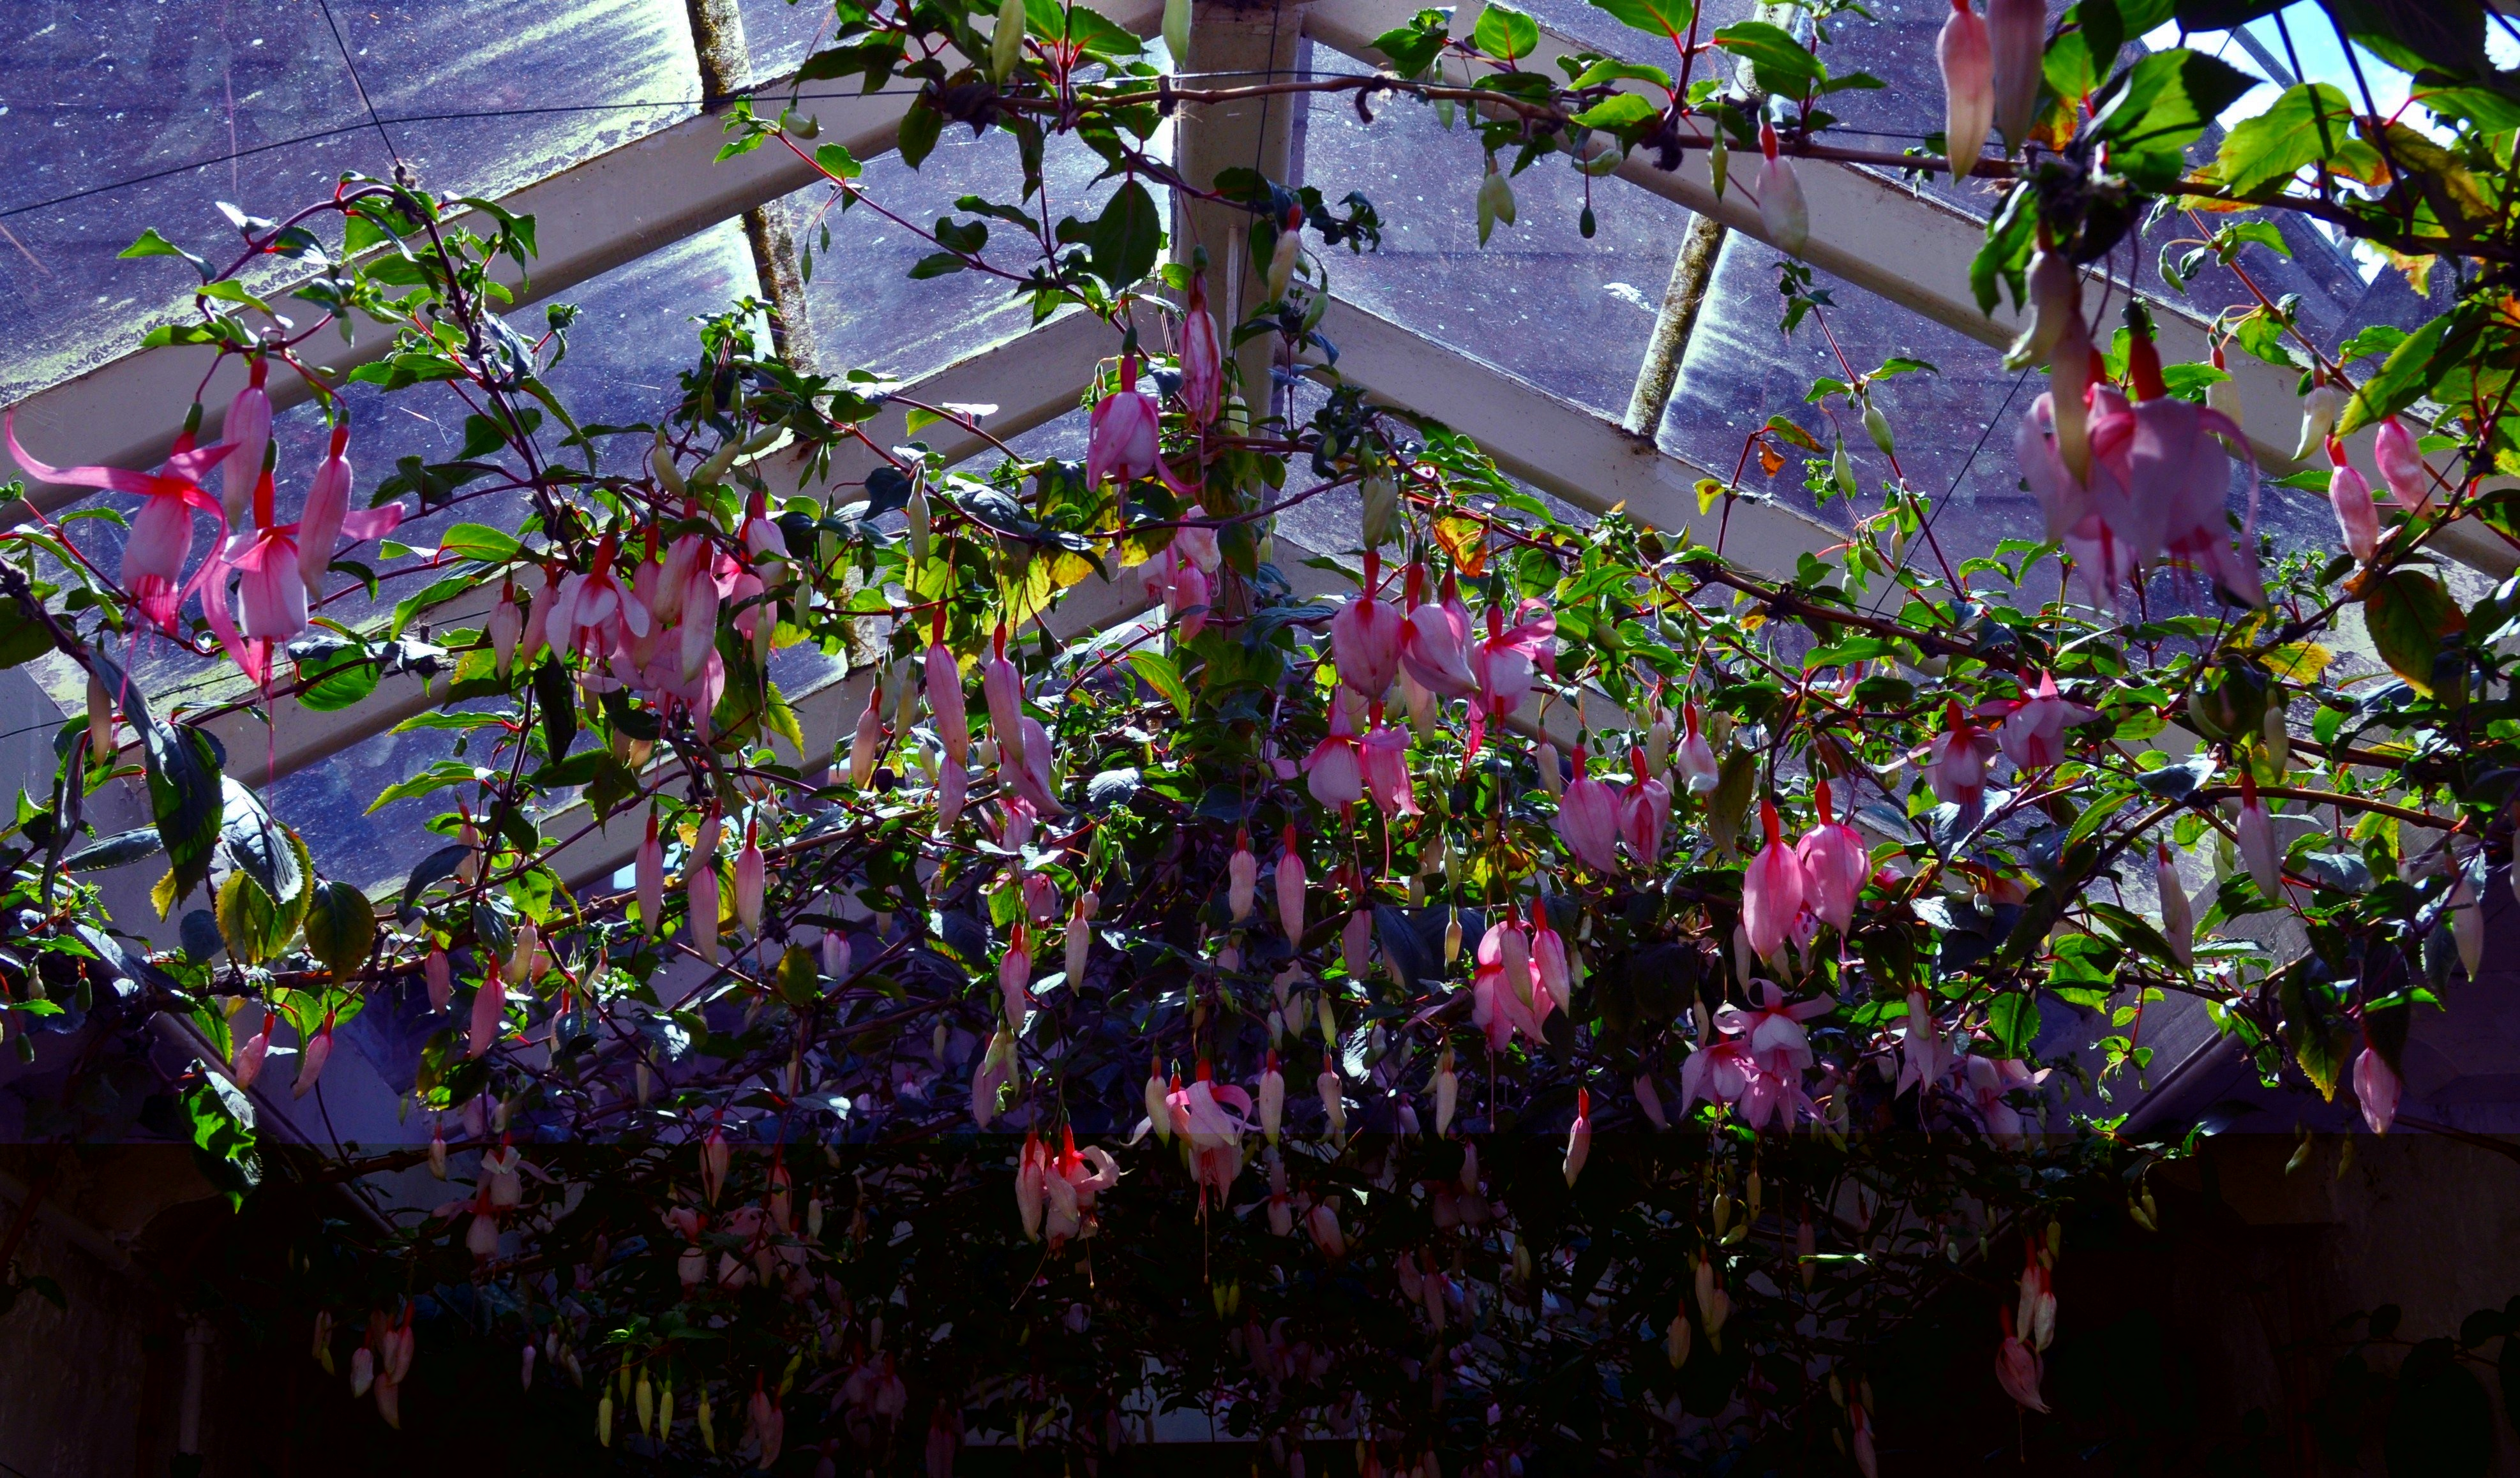 Hothouse Flowers at Night by Forestina Fotos on DeviantArt